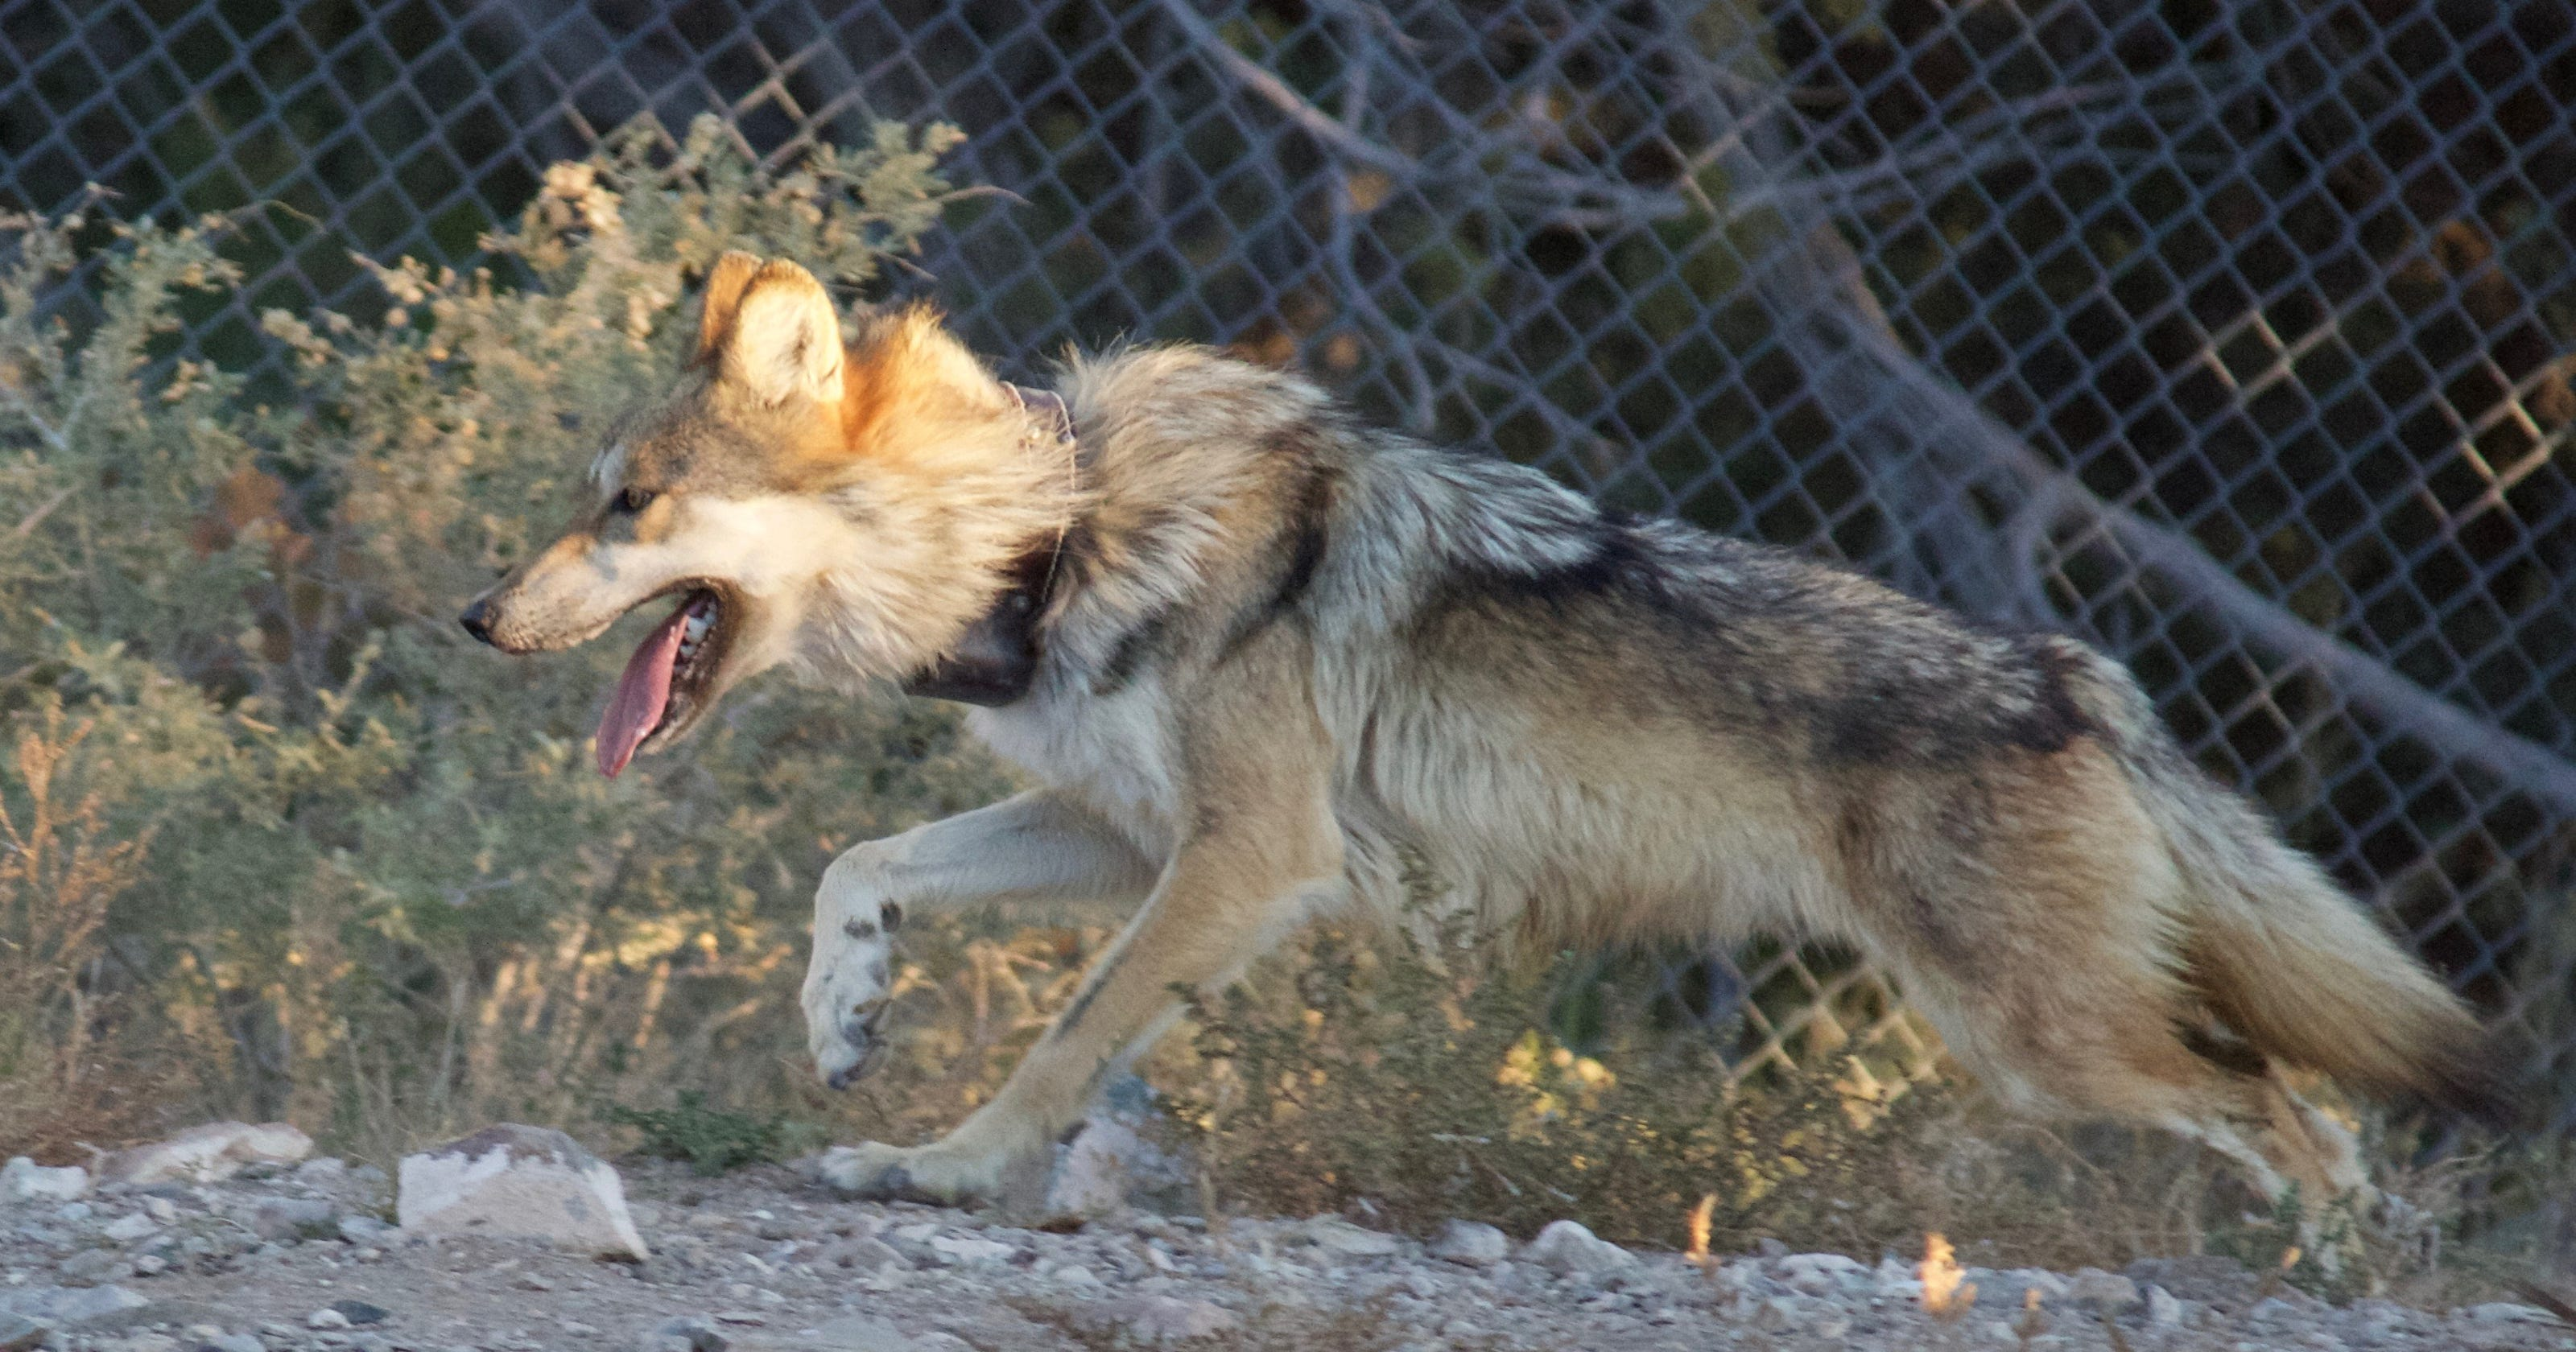 Endangered Mexican wolf population increases in Arizona and